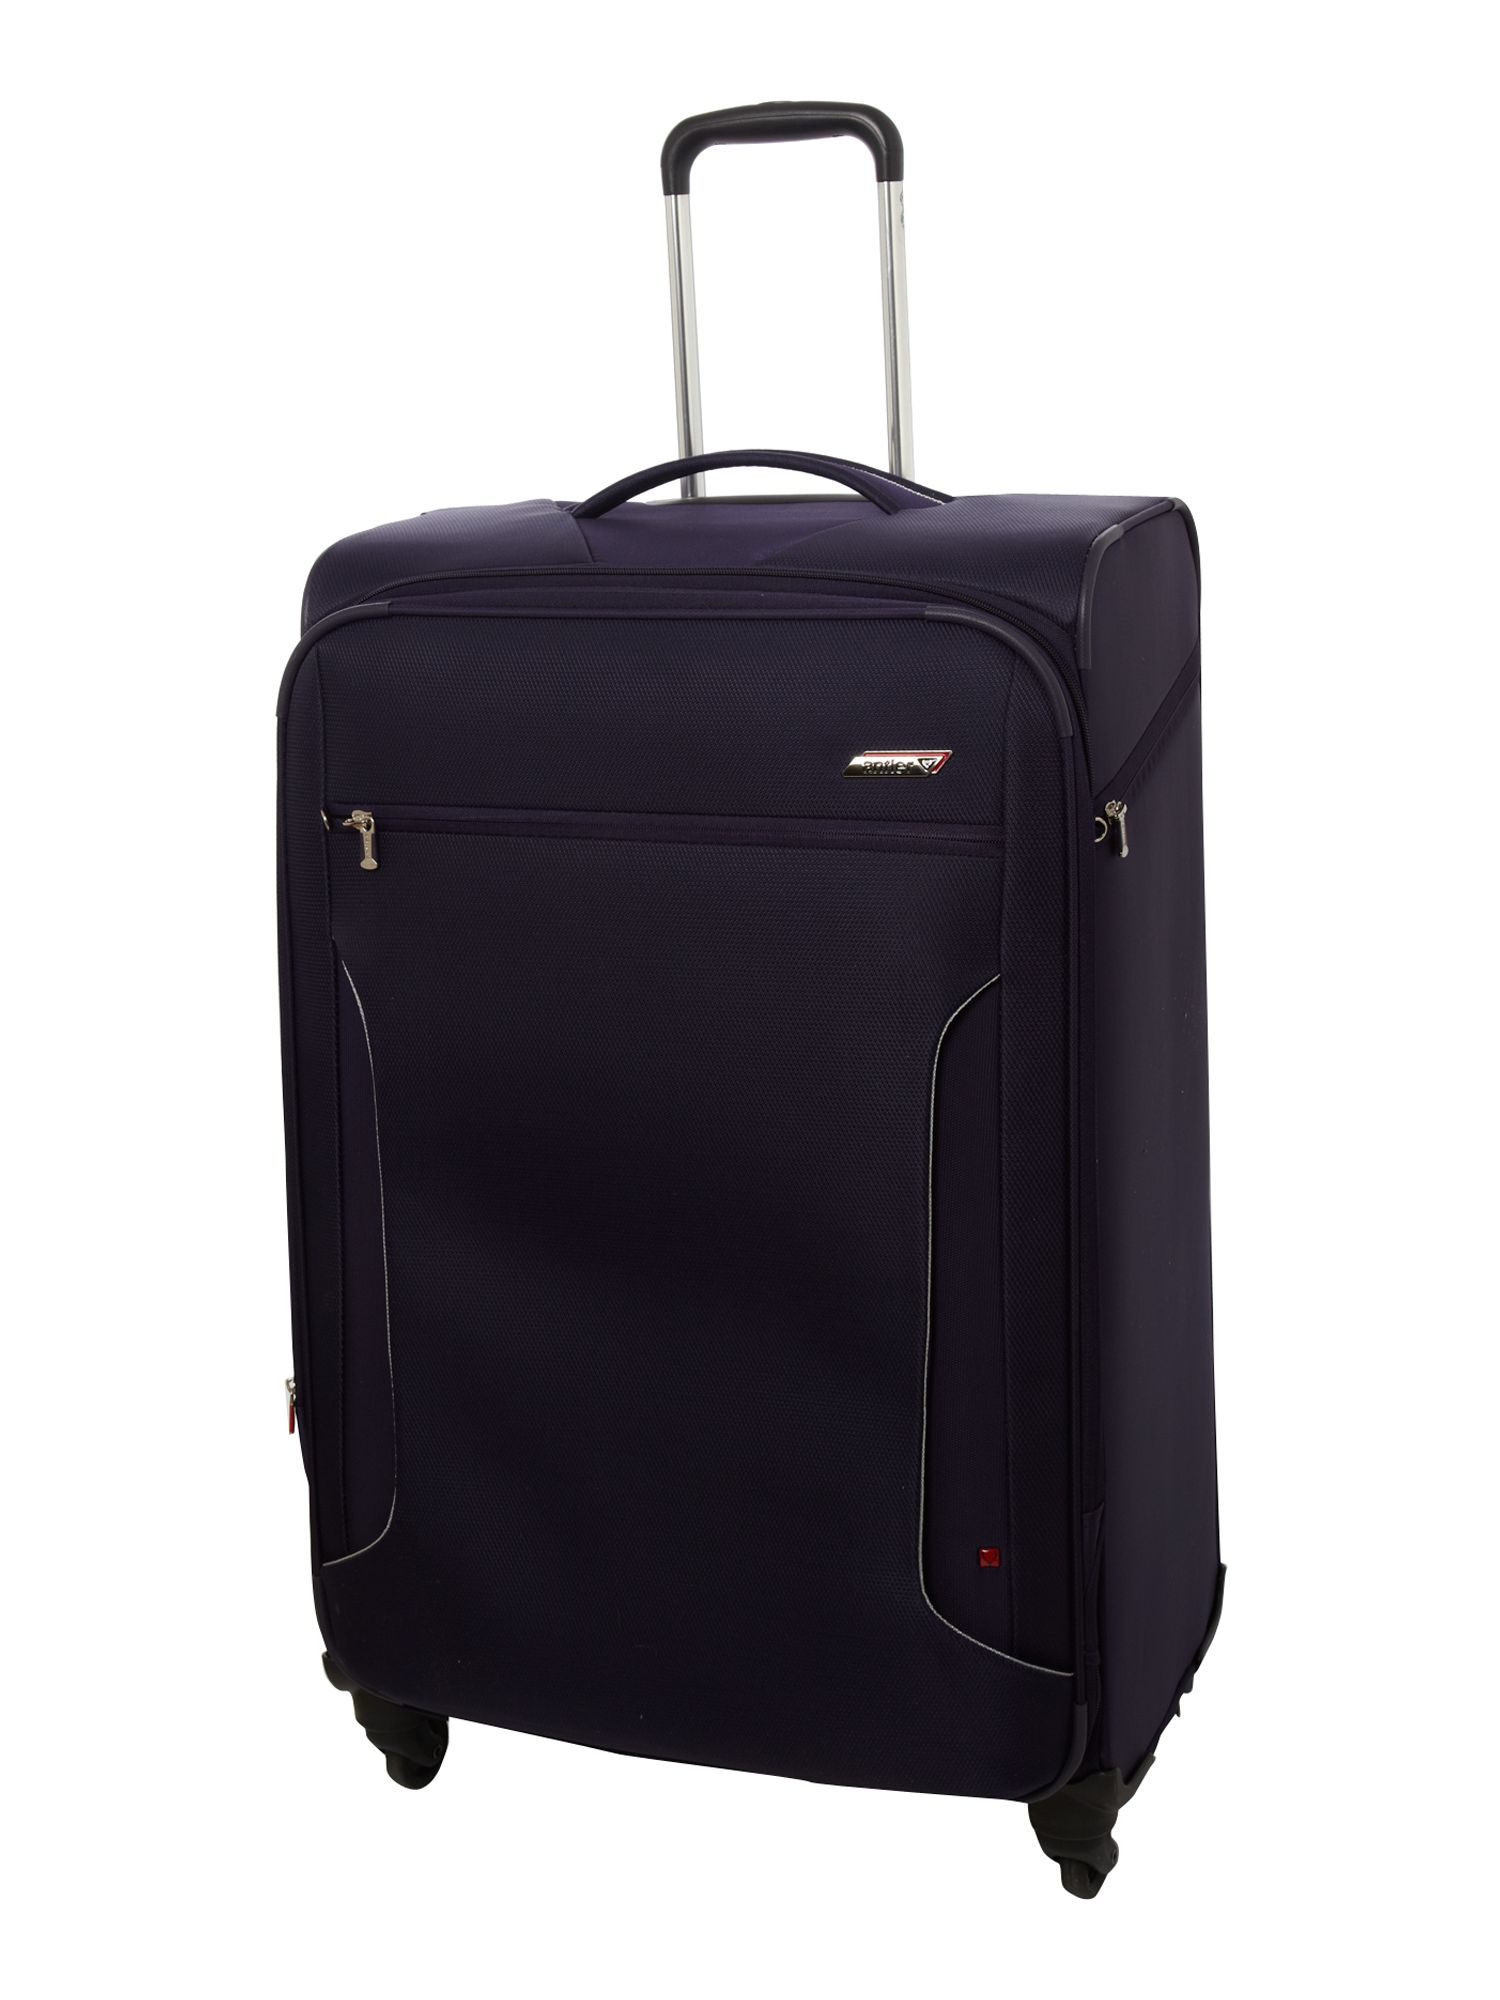 CyberLite Large Rollercase Purple